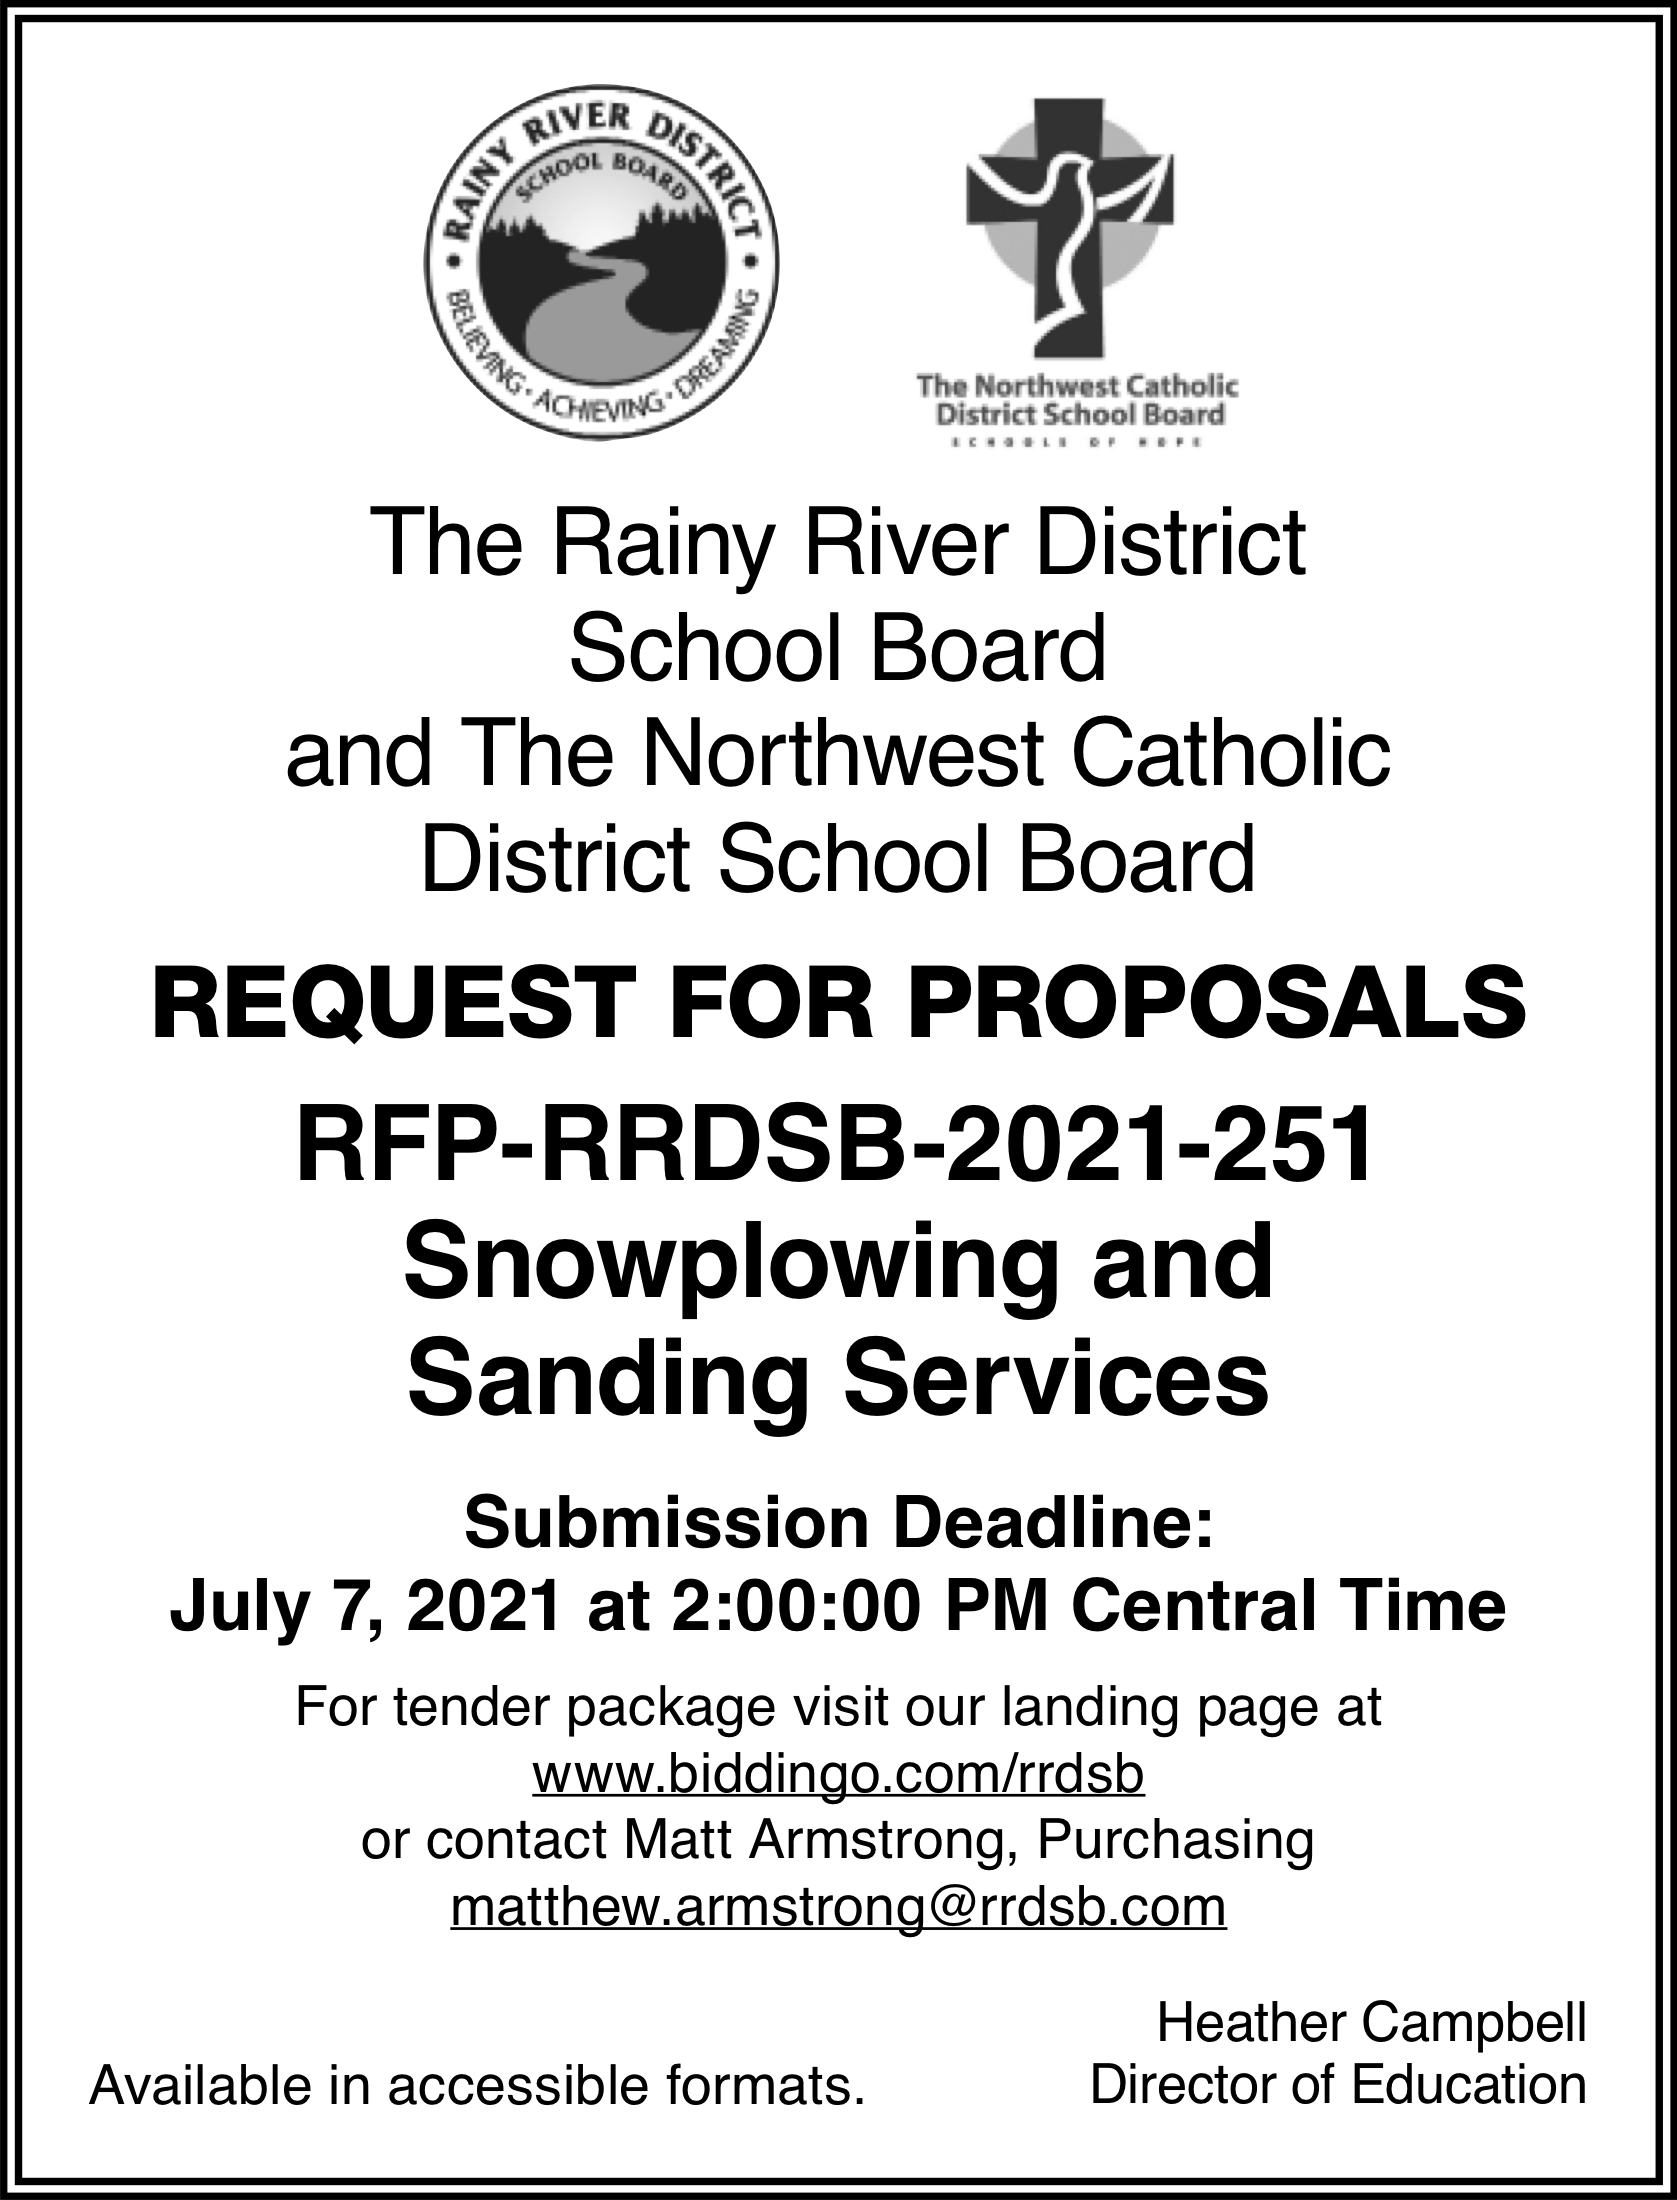 Request for Proposals: Snowplowing and Sanding Services